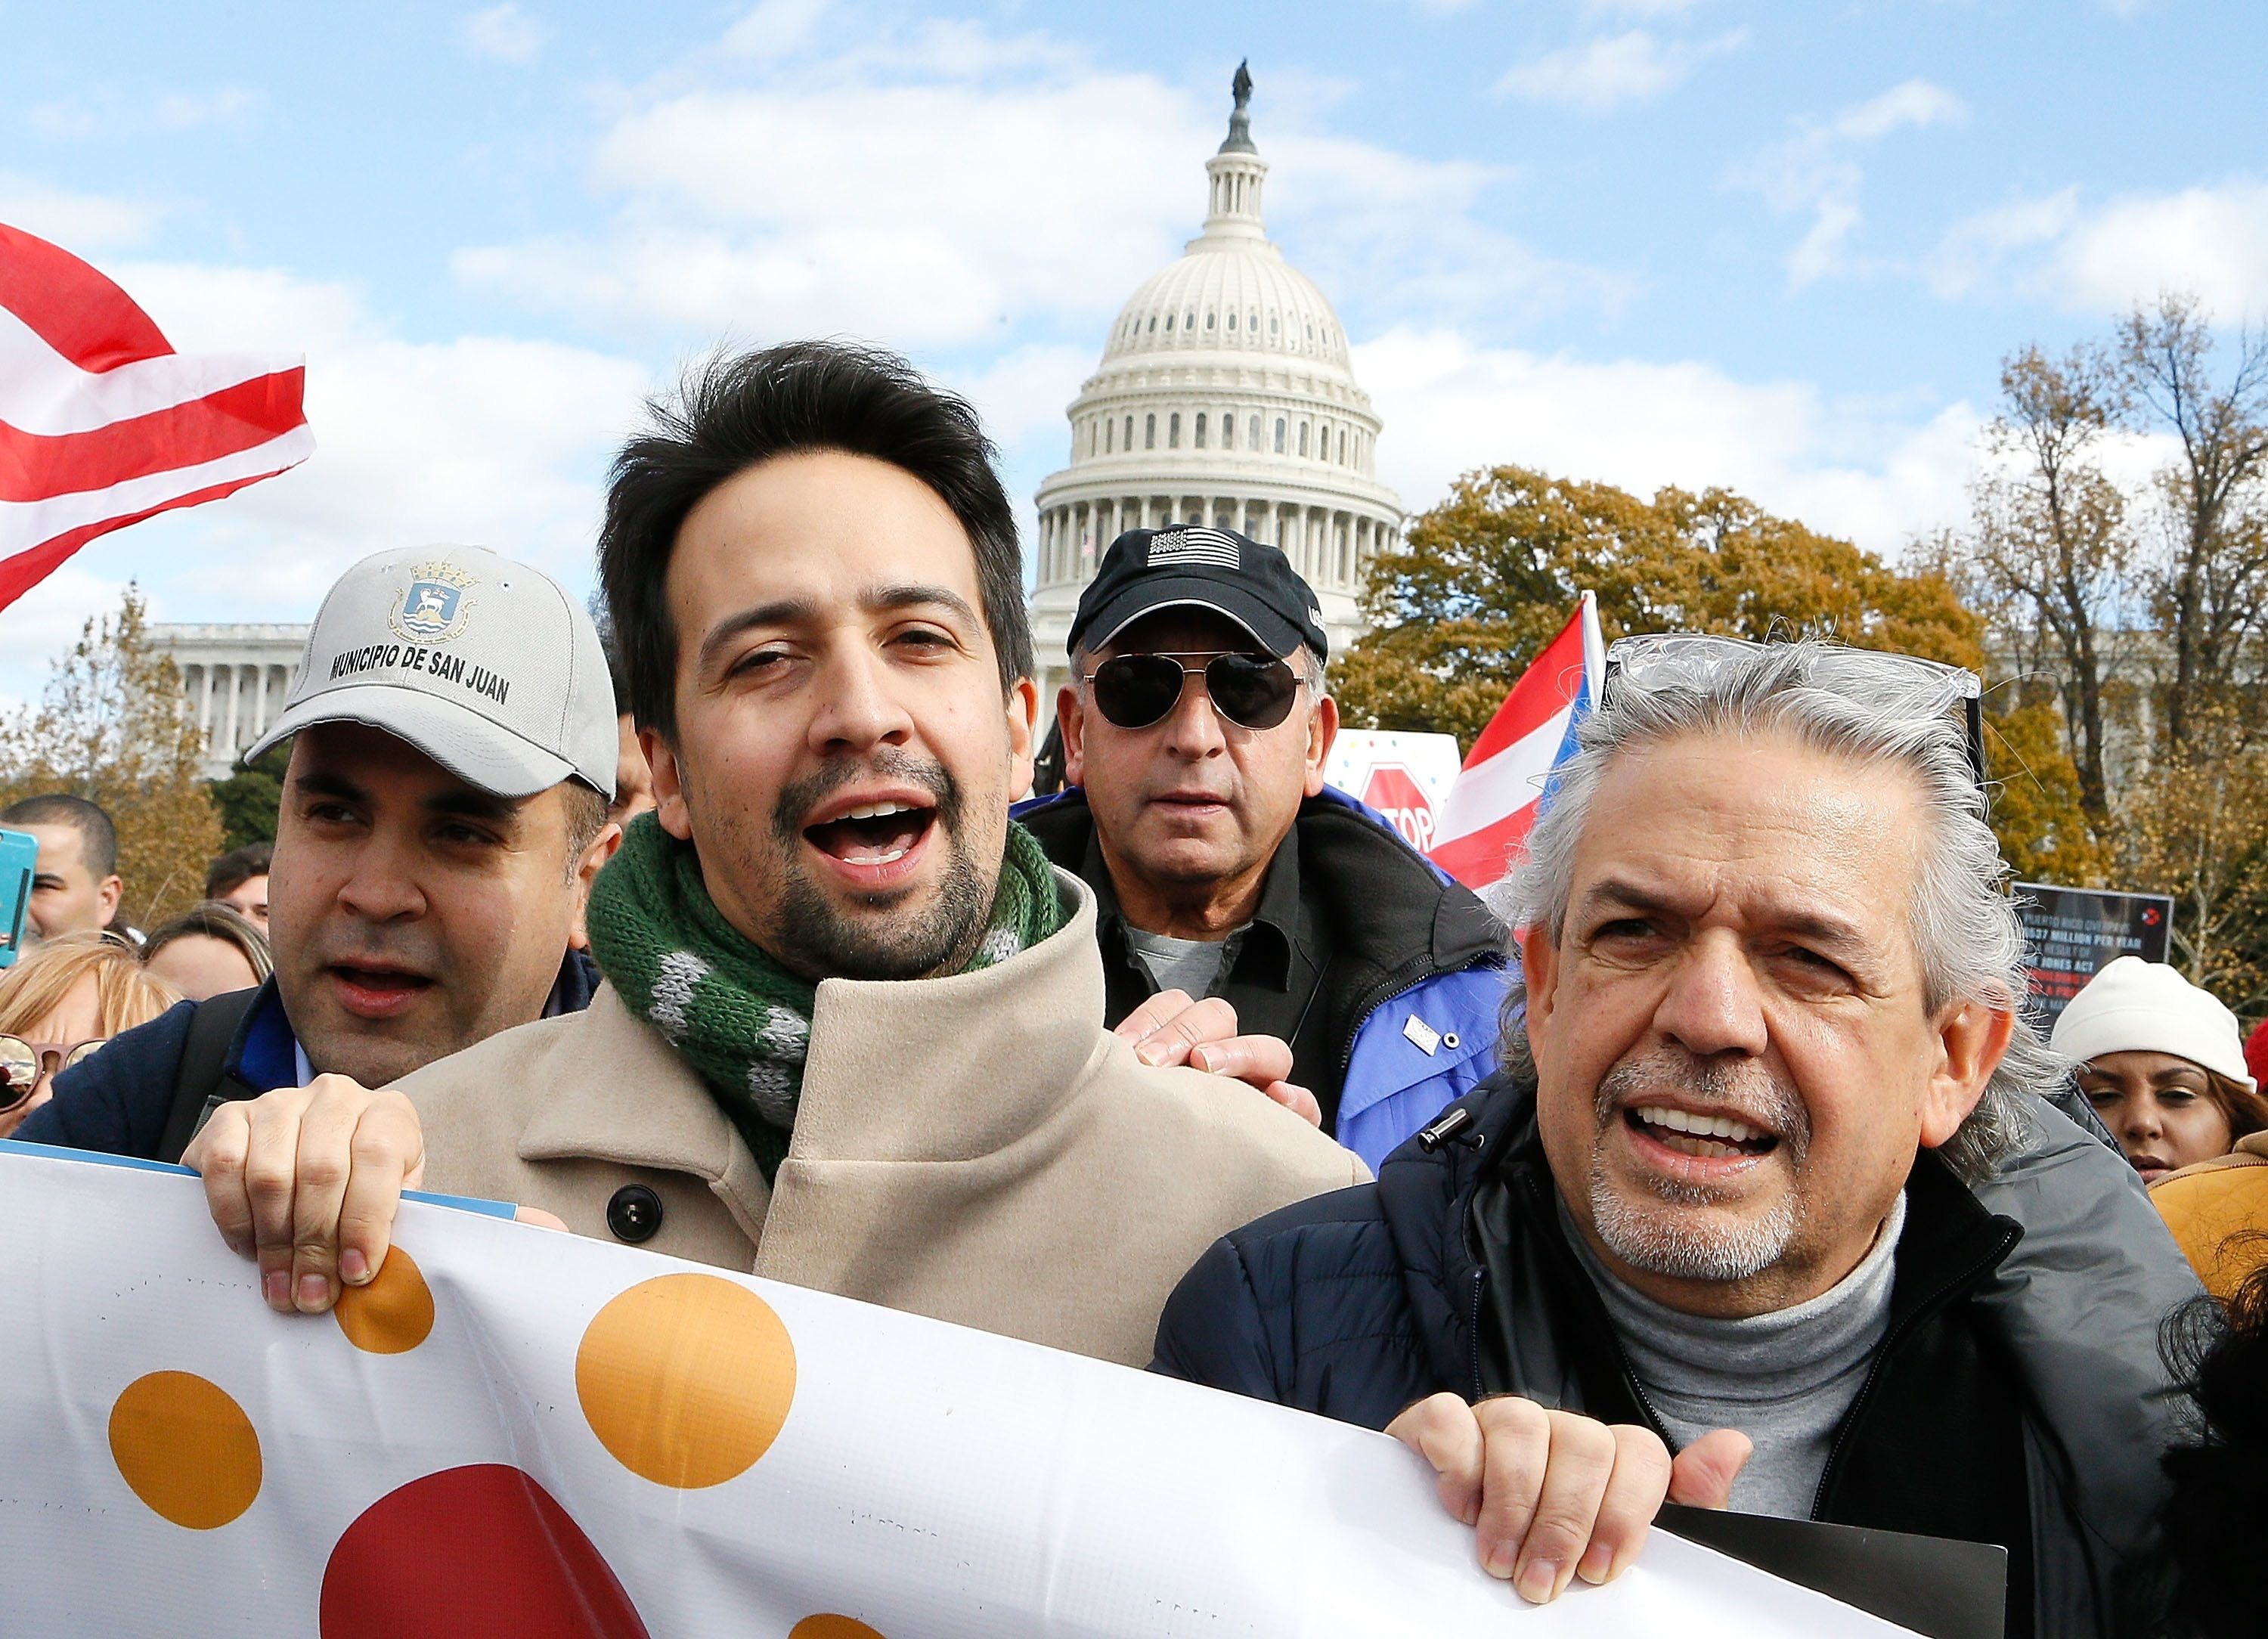 WASHINGTON, DC - NOVEMBER 19:  Lin-Manuel Miranda (C) and his father, Luis A. Miranda Jr. (R), attend a Unity for Puerto Rico march on Capitol Hill on November 19, 2017 in Washington, DC.  (Photo by Paul Morigi/Getty Images)